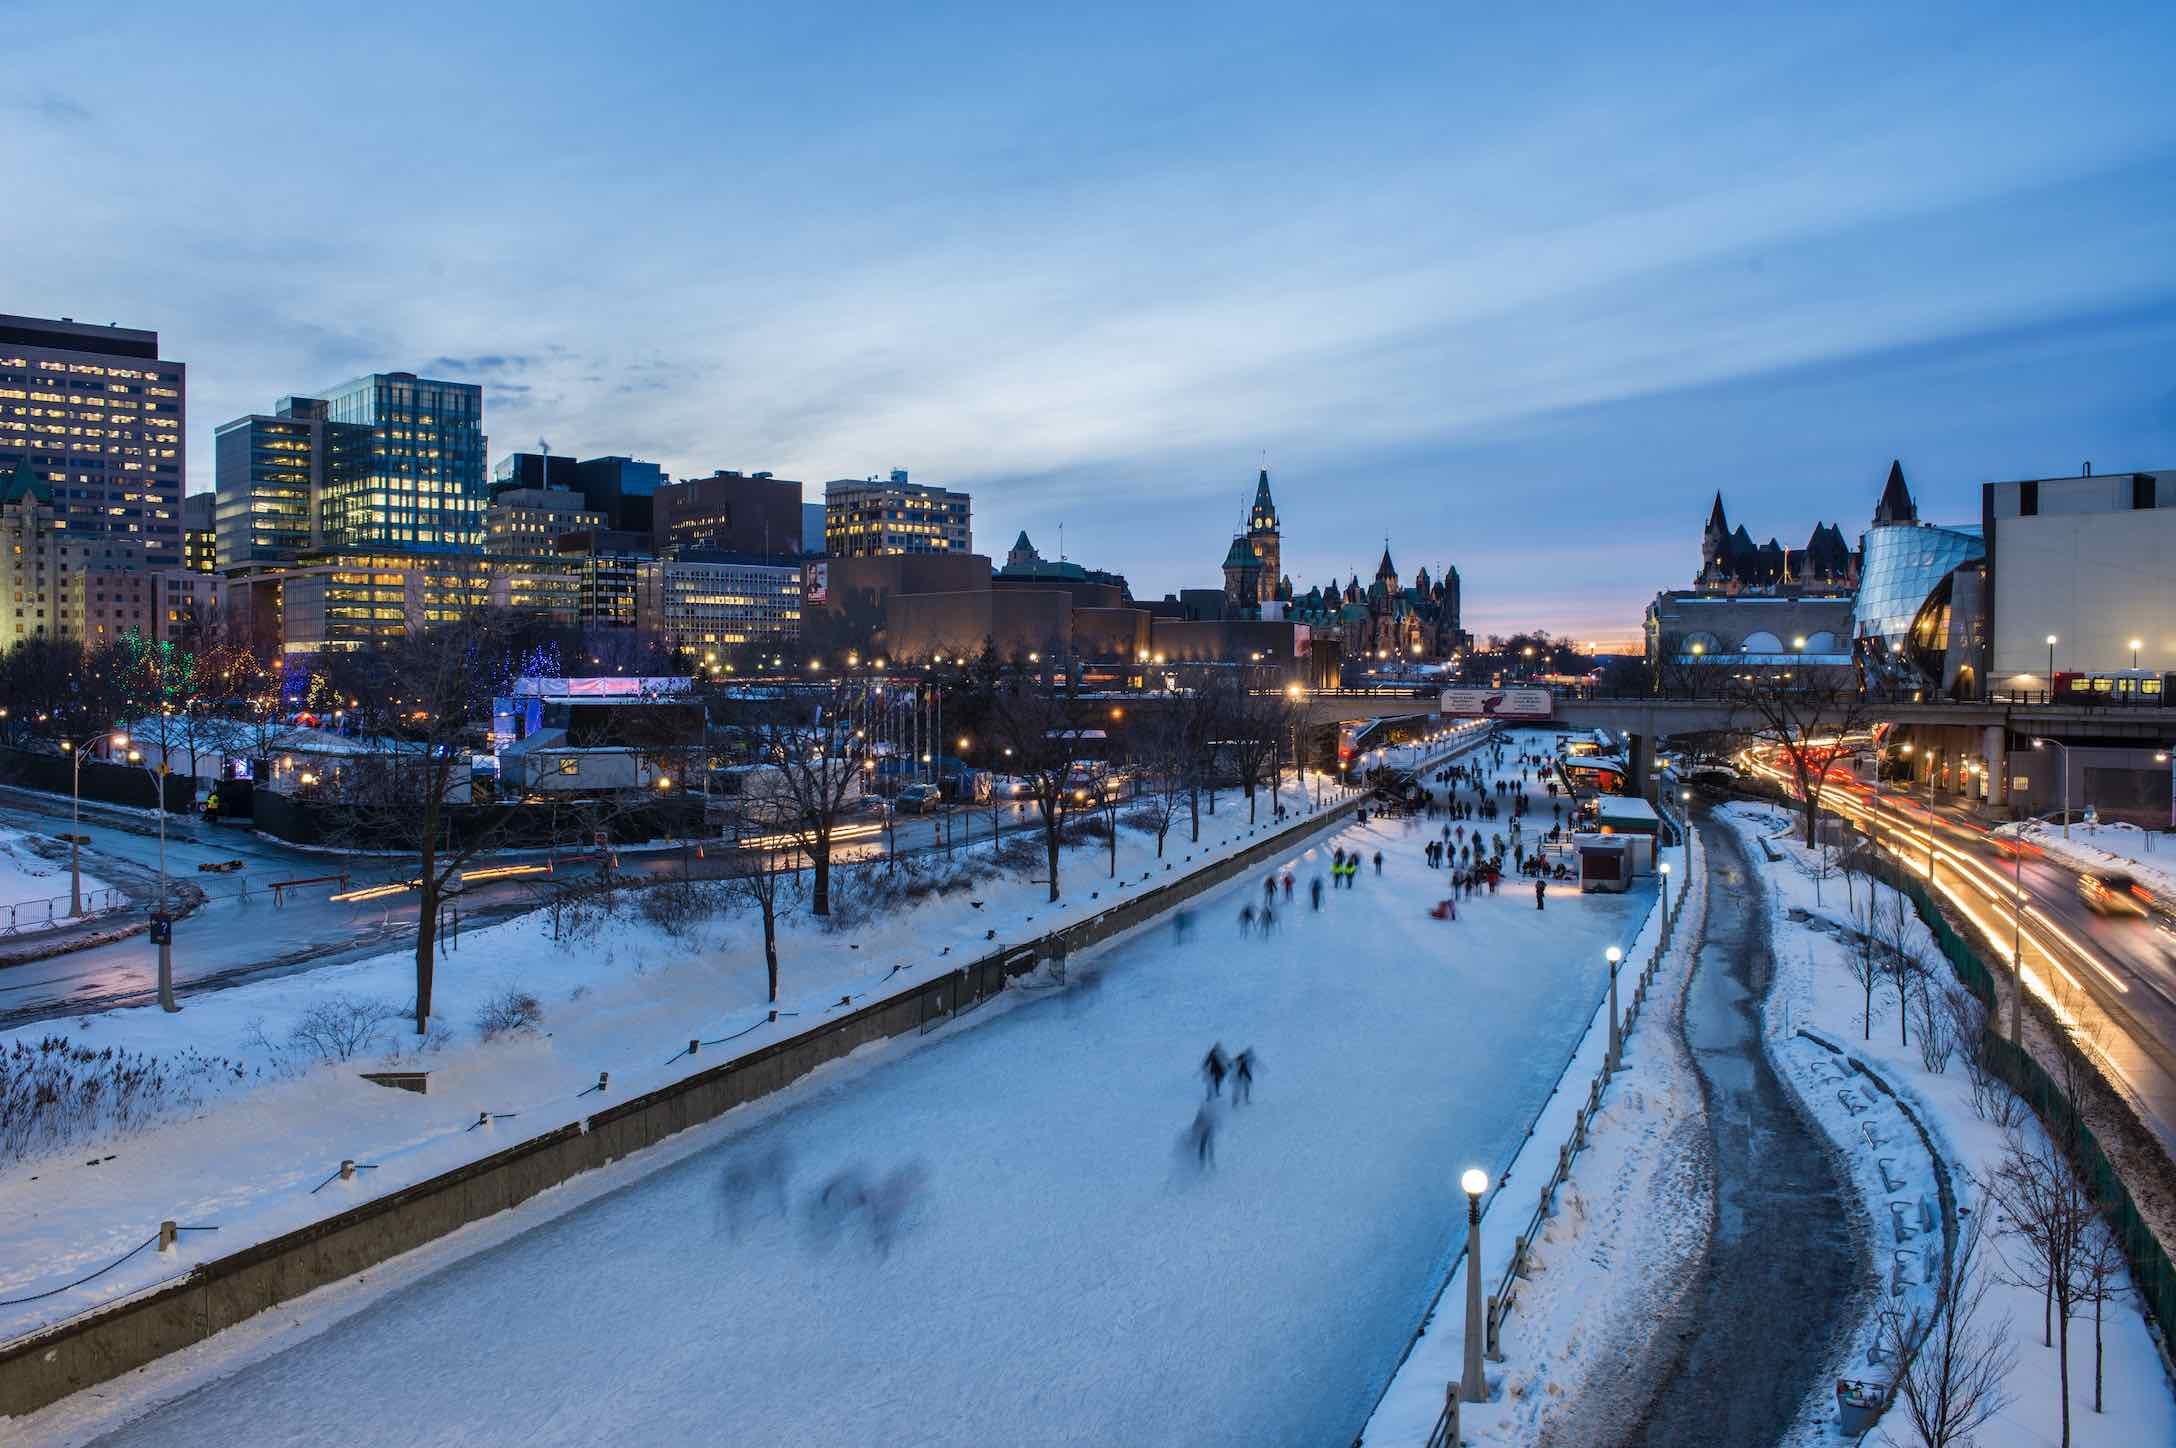 Skating on the Rideau Canal in Ottawa at night, one of the top things to do in Ontario in winter